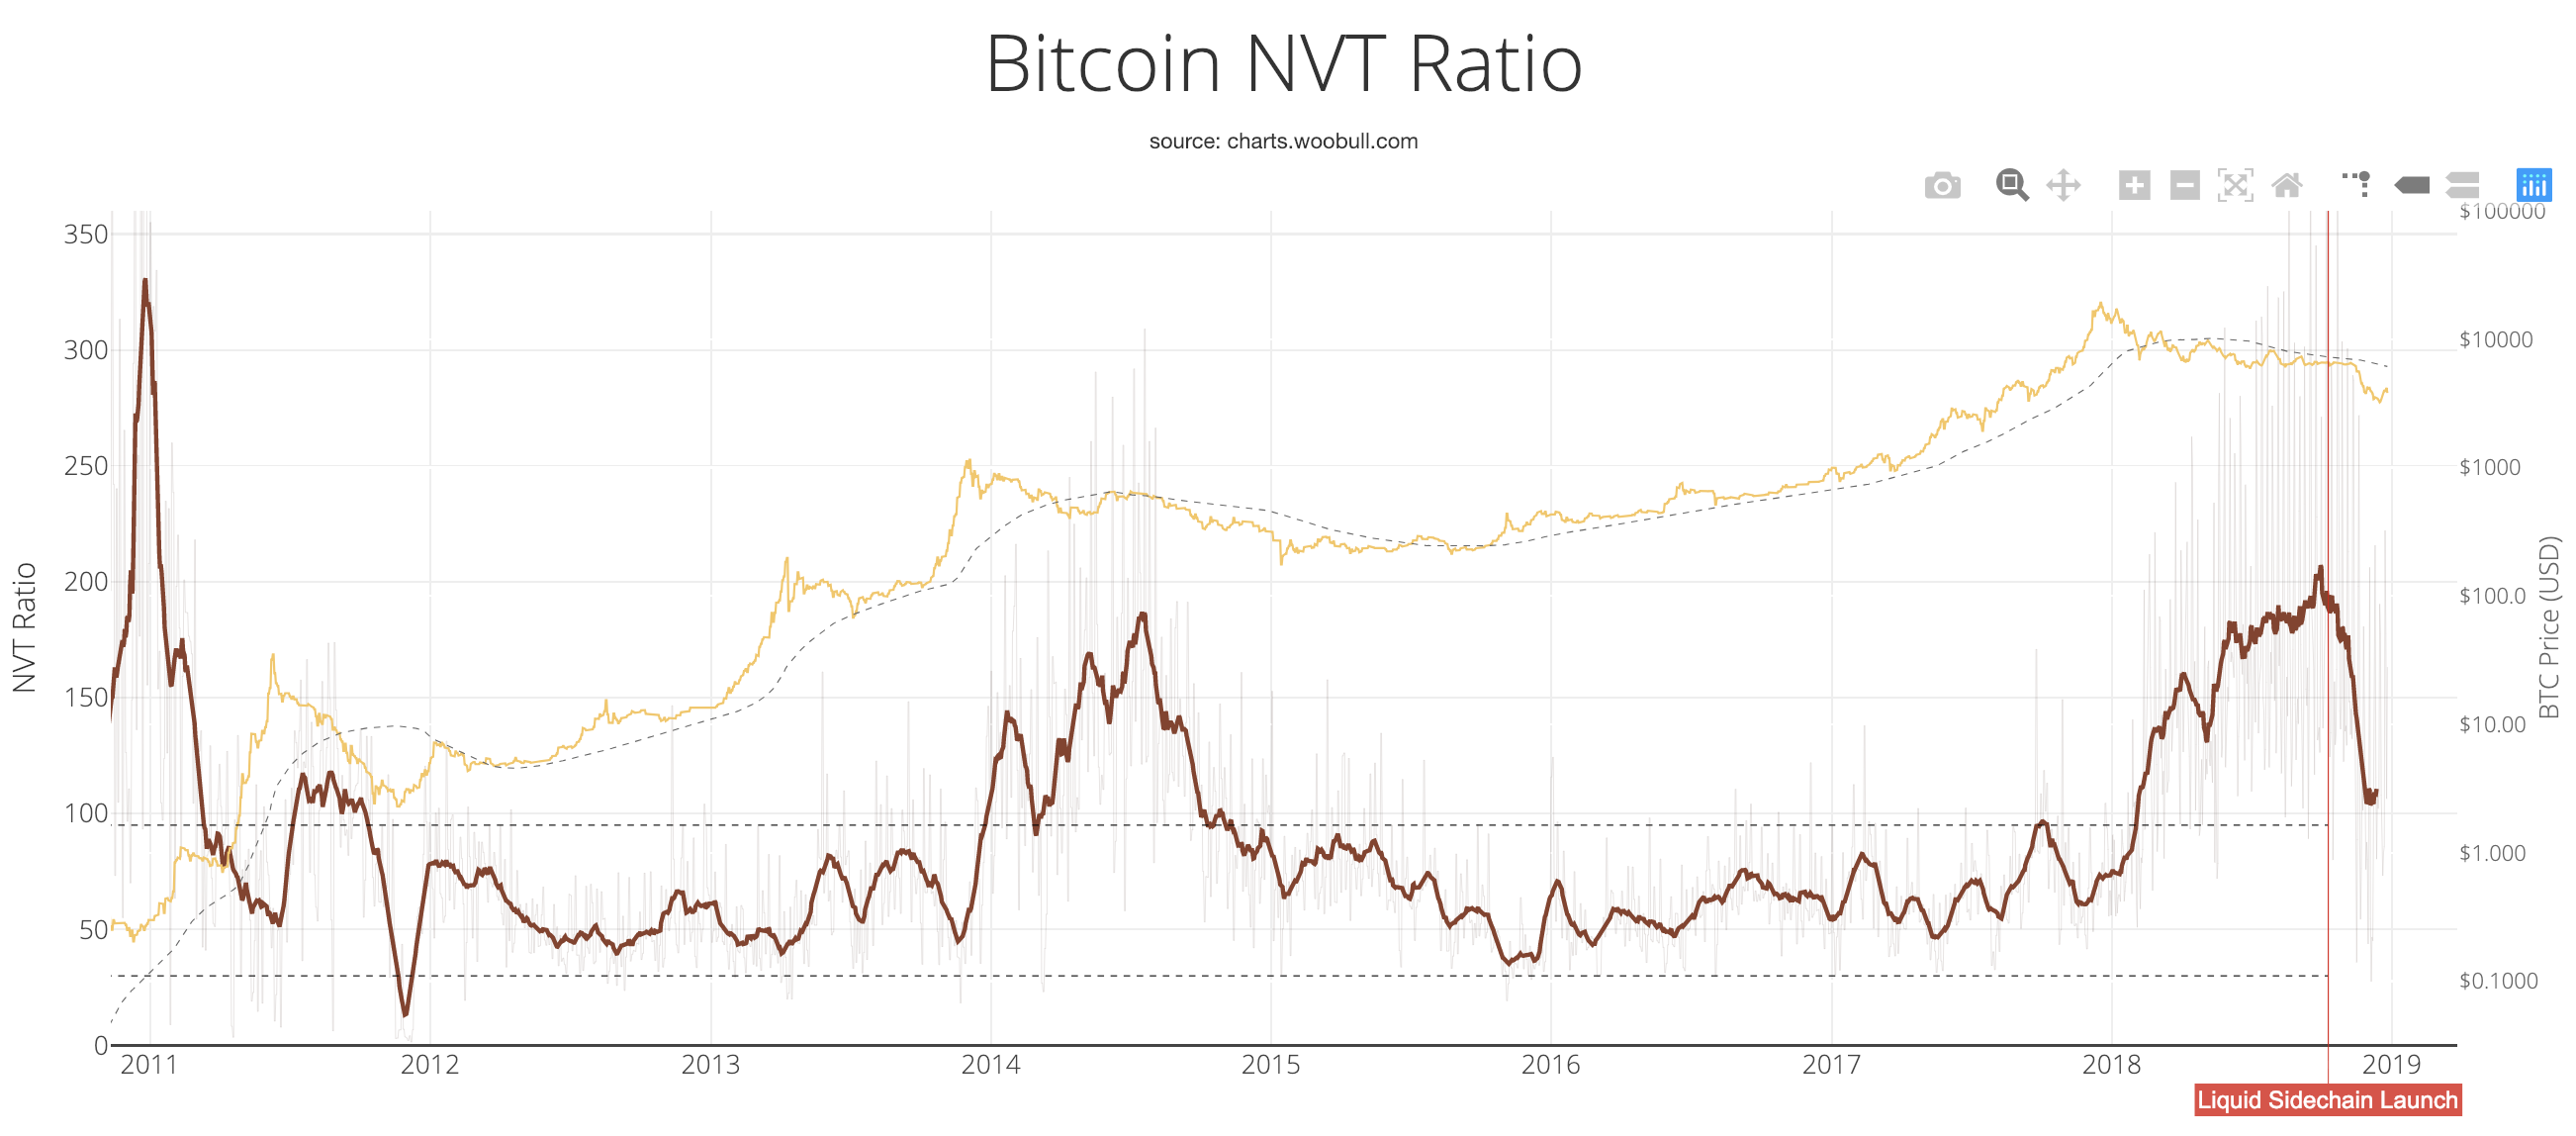 As Can Be Seen In The Above Chart Bitcoin S Nvt Ratio Was Well 100 For Almost All Of 2018 And Even Reached Its Highest Level Since 2017 200